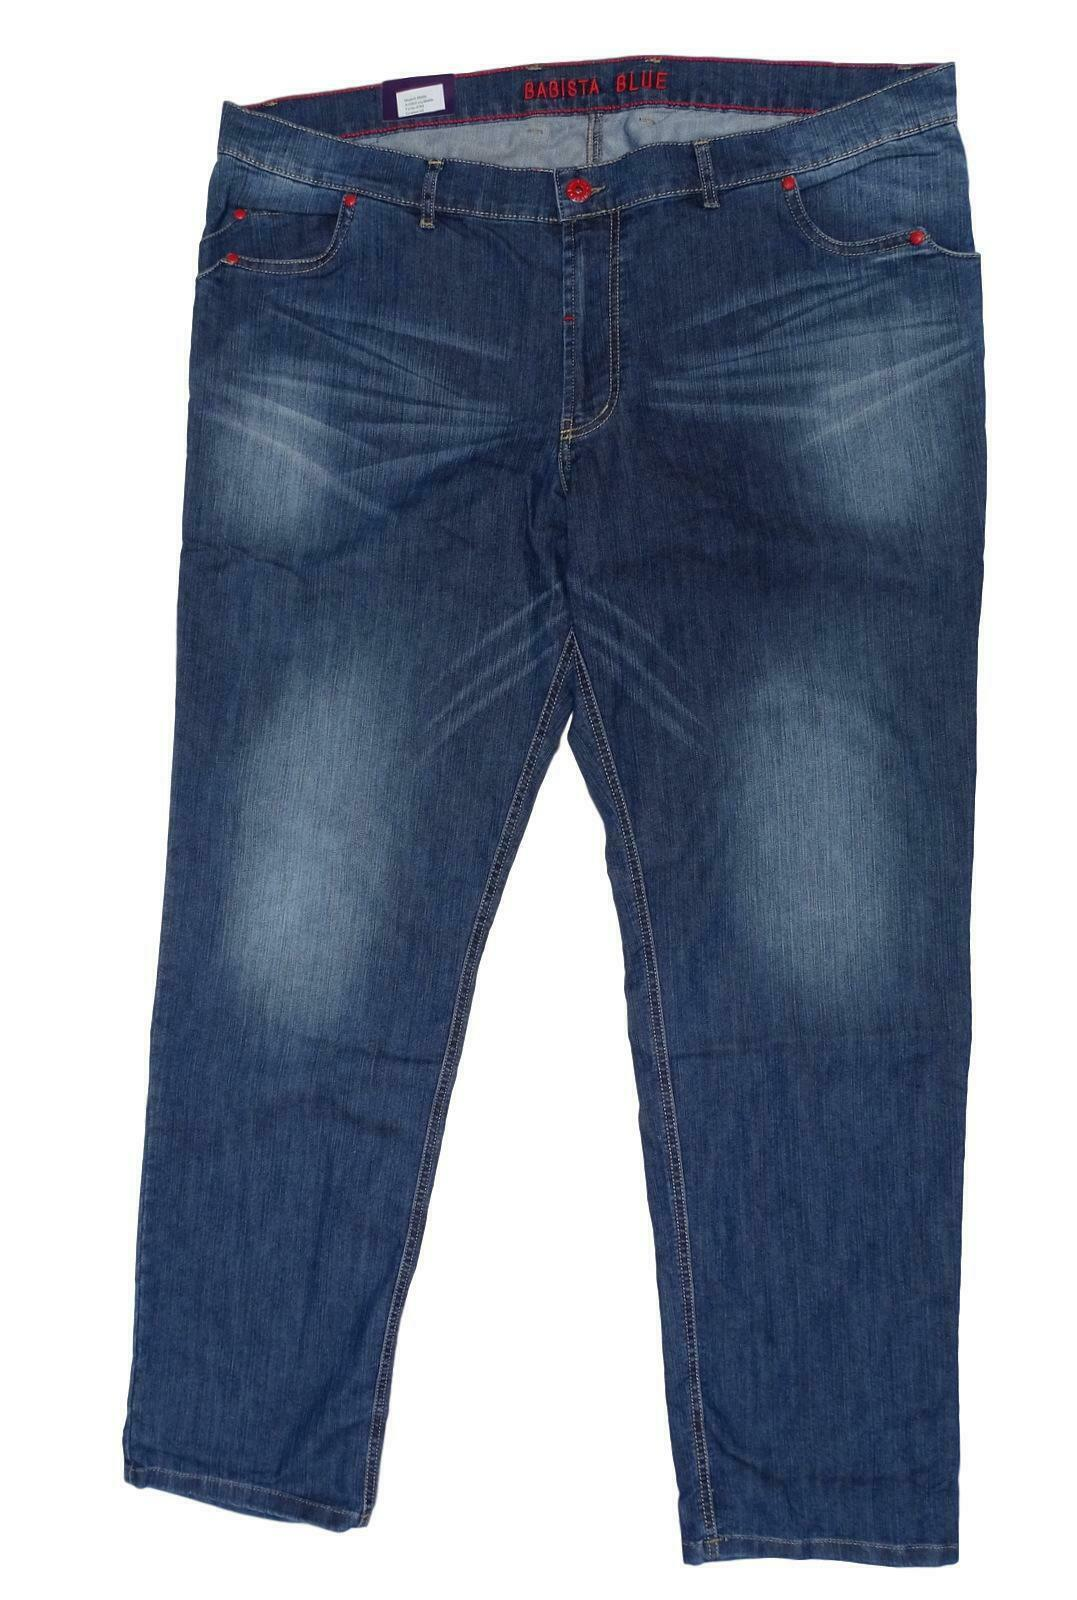 New plus Size Great Men's Stretch Jeans Pants bluee Buttons u.Rivets in Red 62